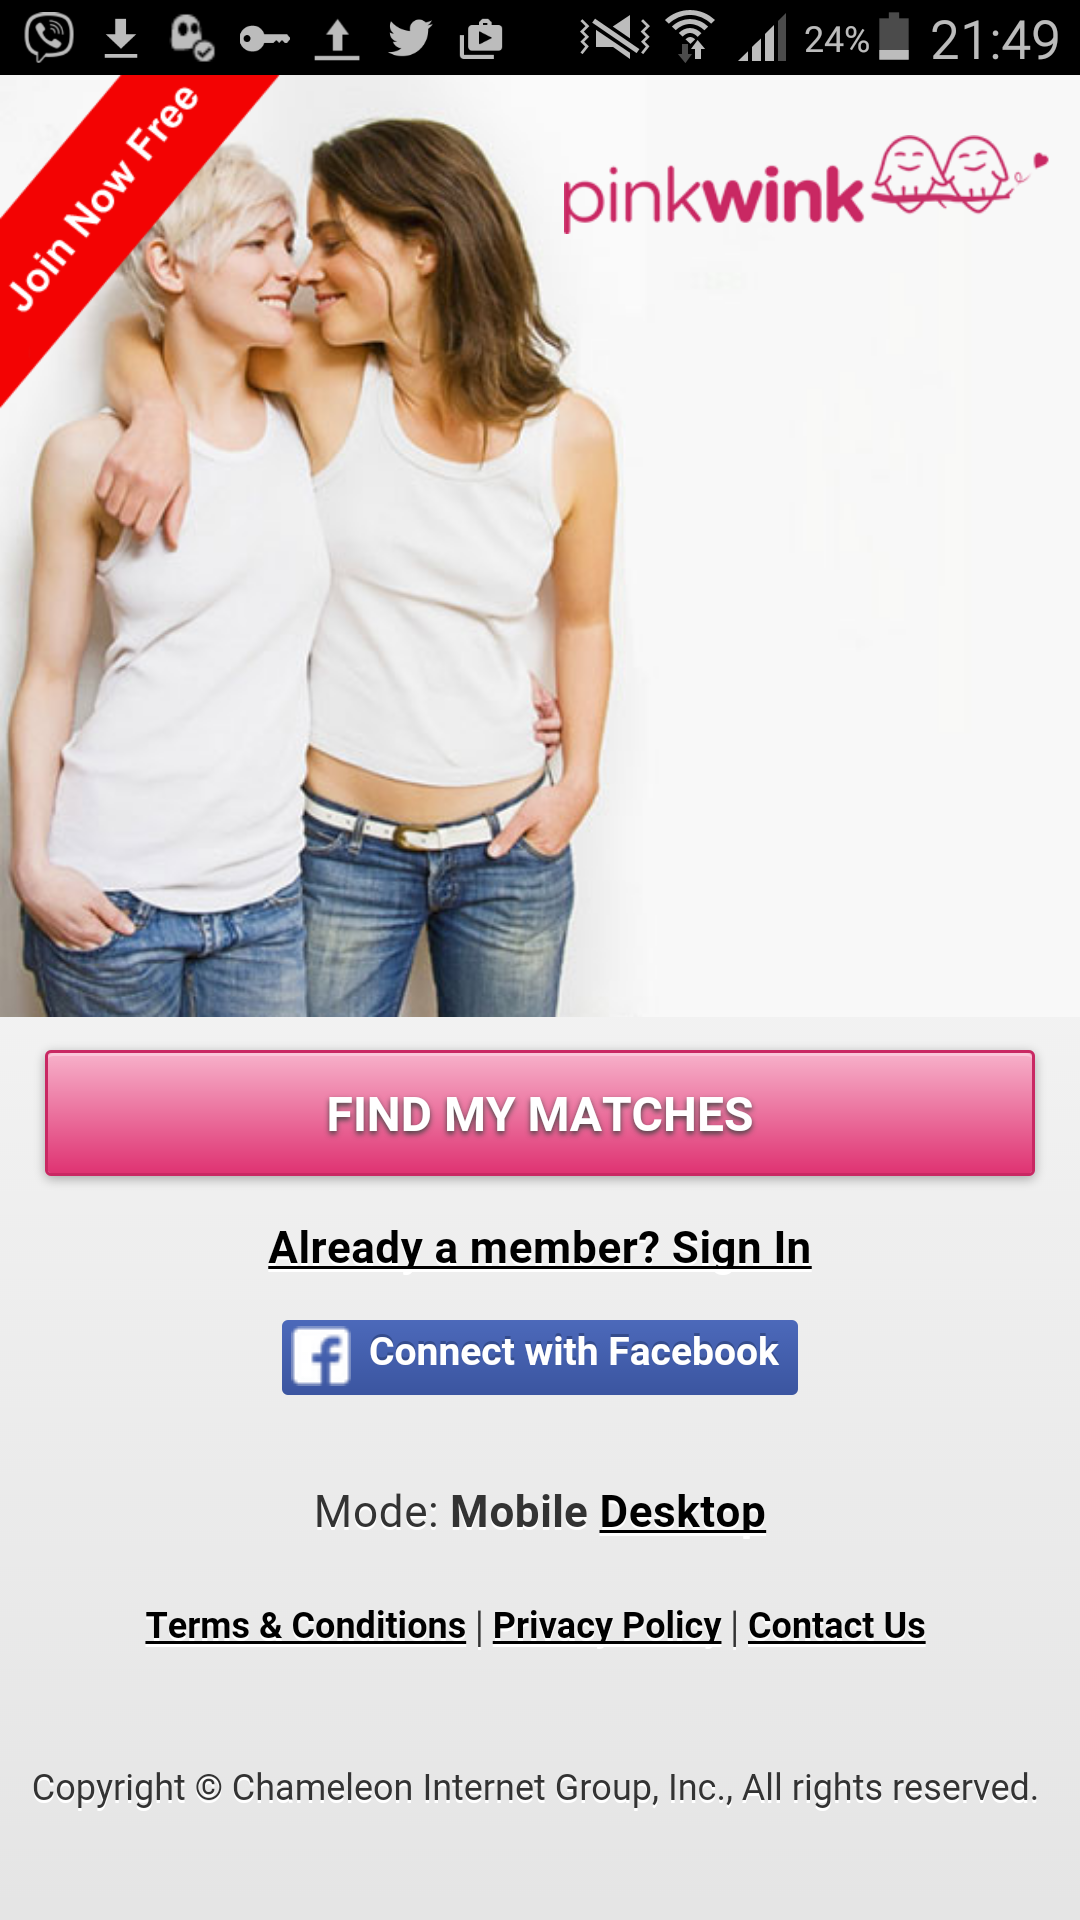 tulia lesbian dating site Find love on pinkwink finally, an online dating website for lesbian singles looking for a date, love, romance, even a long-term commitment pinkwinkcom is the new lesbian dating site that has already attracted millions of lesbian women.